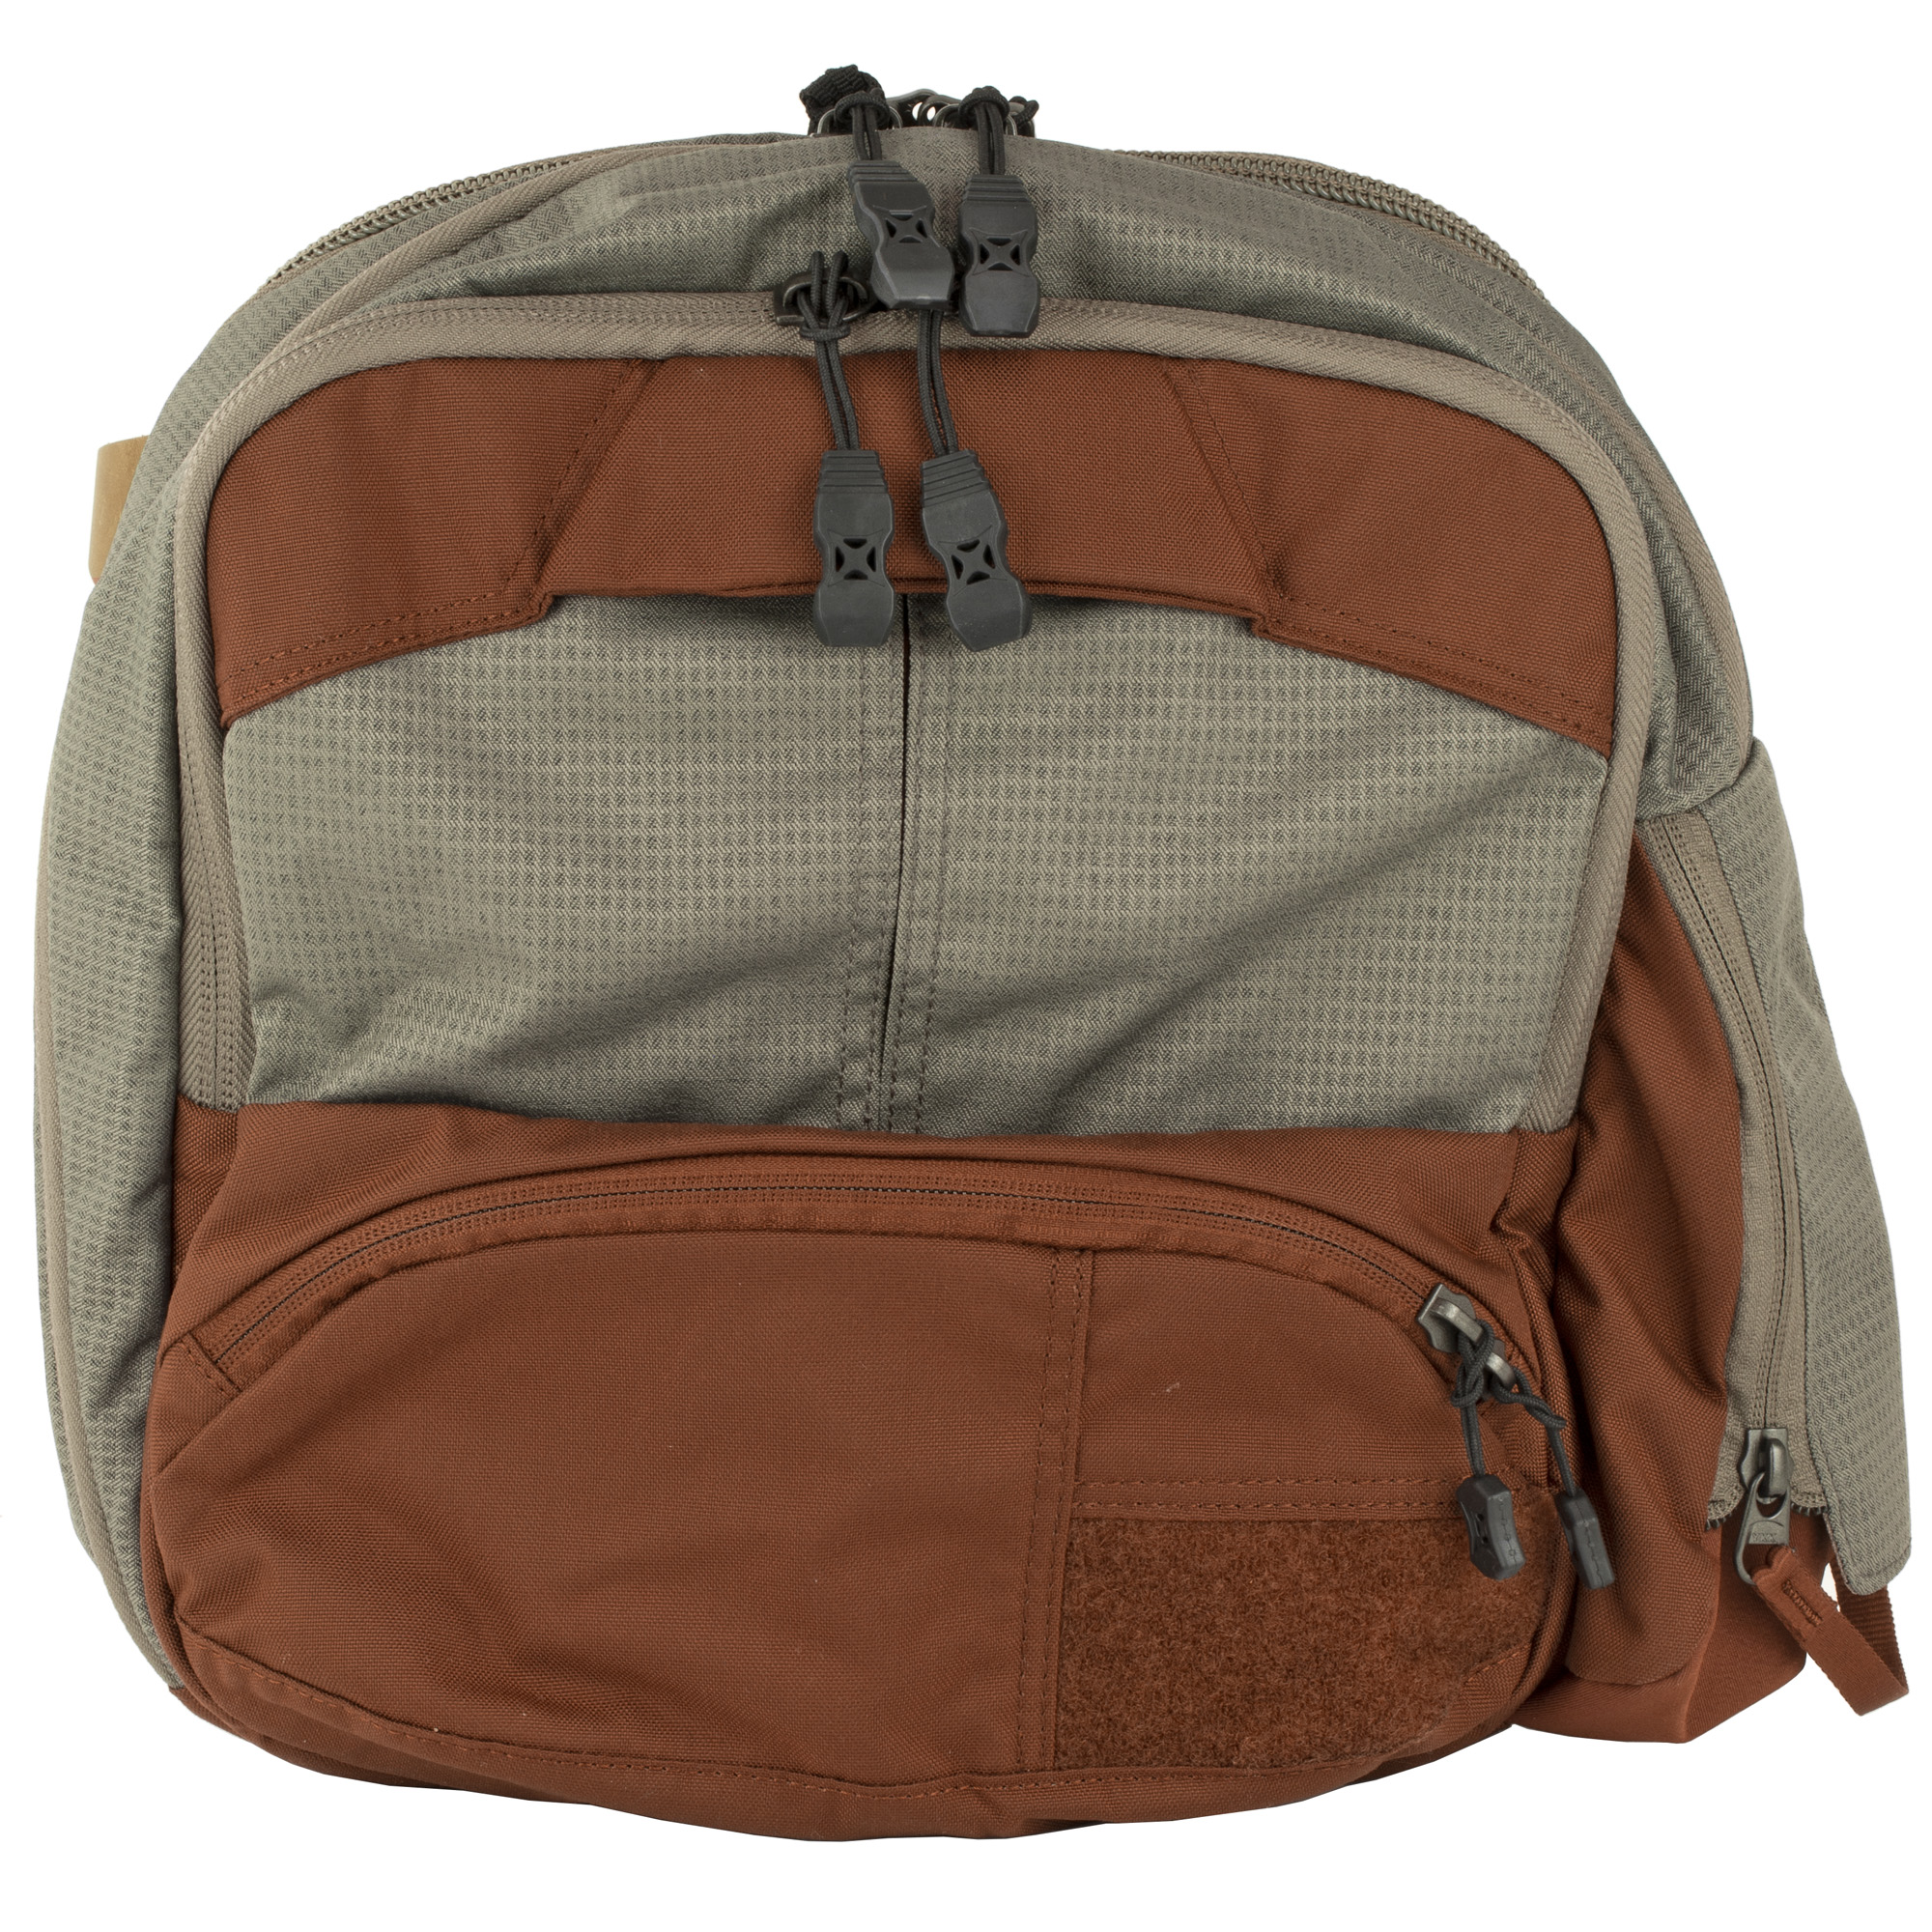 """Traveling light doesn't mean having to give up your essentials when you're on the move. Keep necessities and tools of the trade handy and organized subtly without the bulk of a full-sized pack"""" while retaining the option to add more capacity if needed. The Essential Sling's attractive street styling belies the capabilities at your fingertips."""